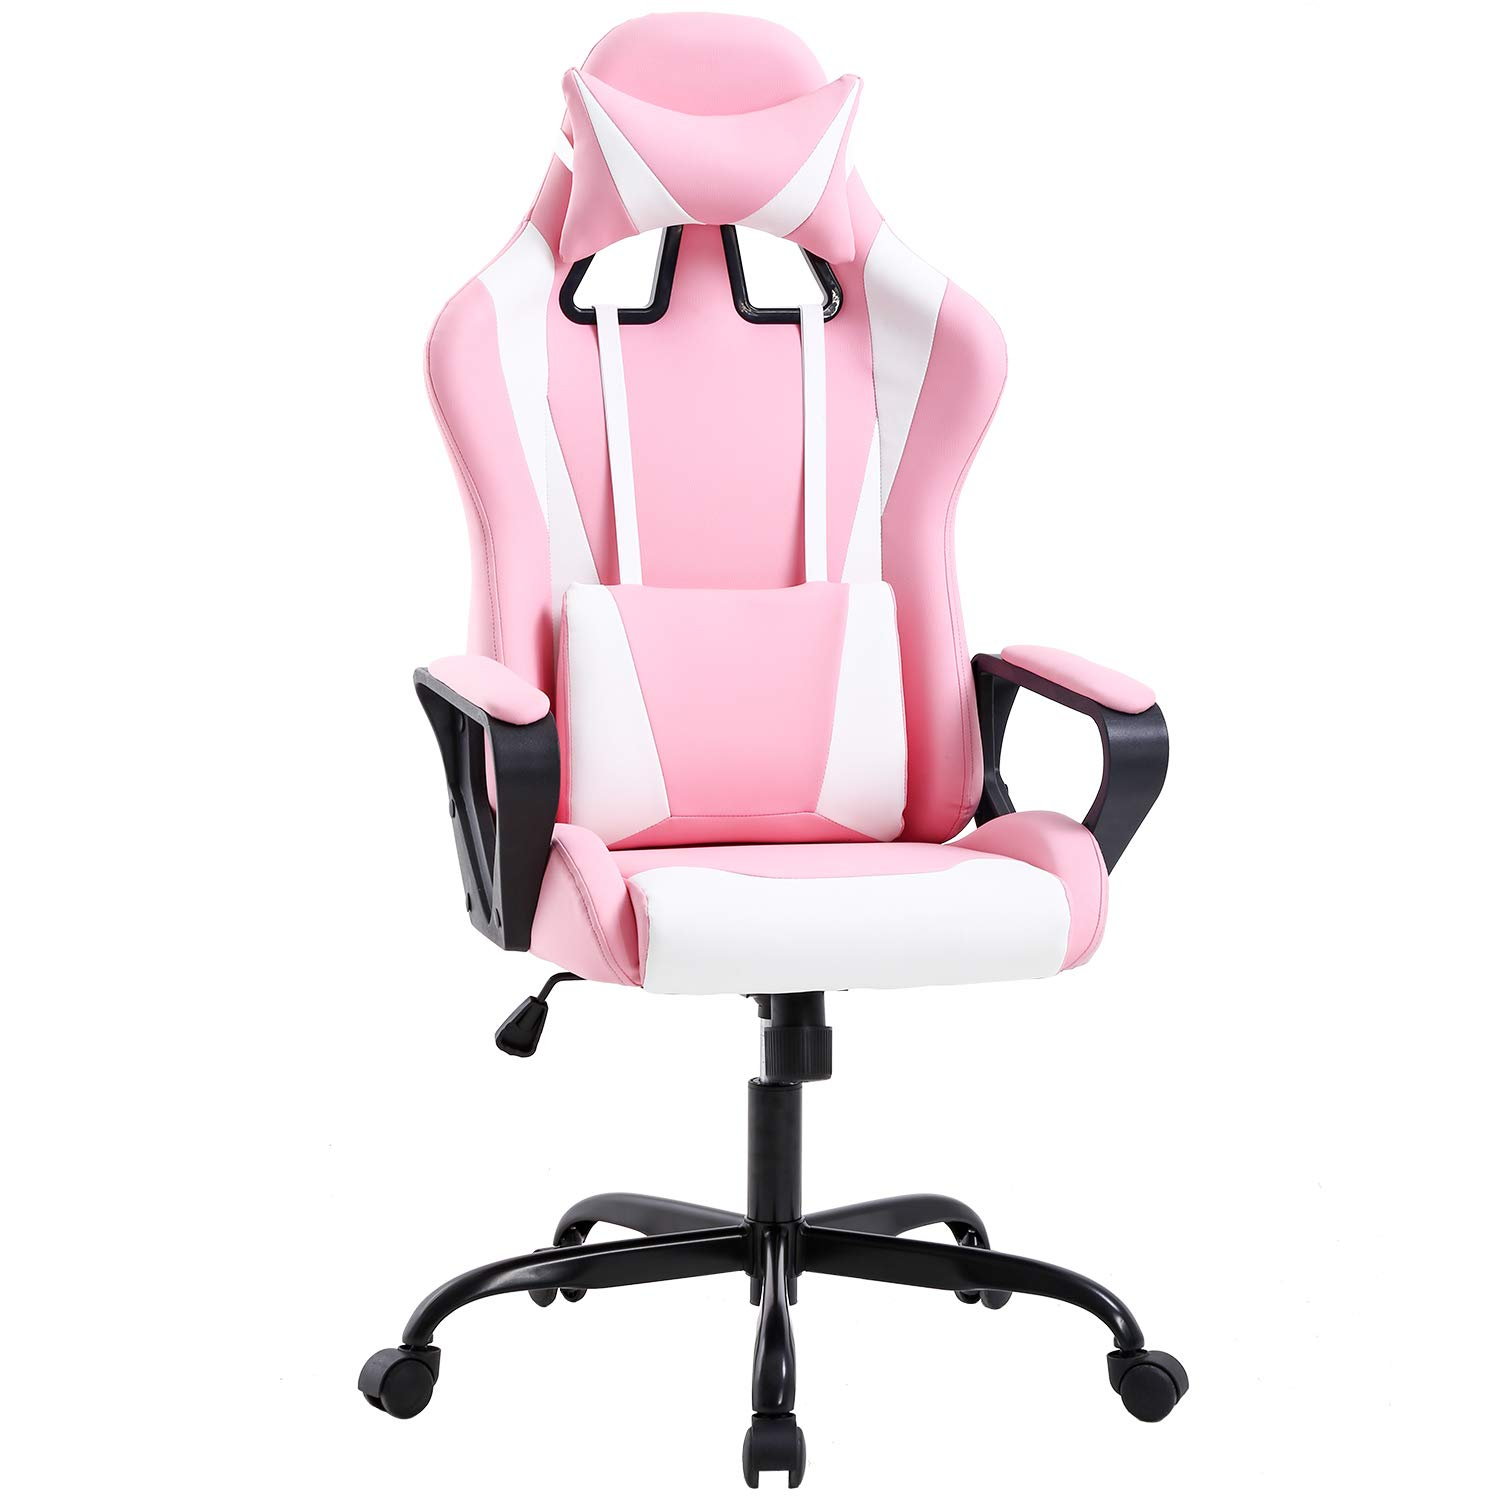 Gaming Chair Office Chair Desk Chair Ergonomic Executive Swivel Rolling Computer Chair with Lumbar Support, Pink by BestOffice